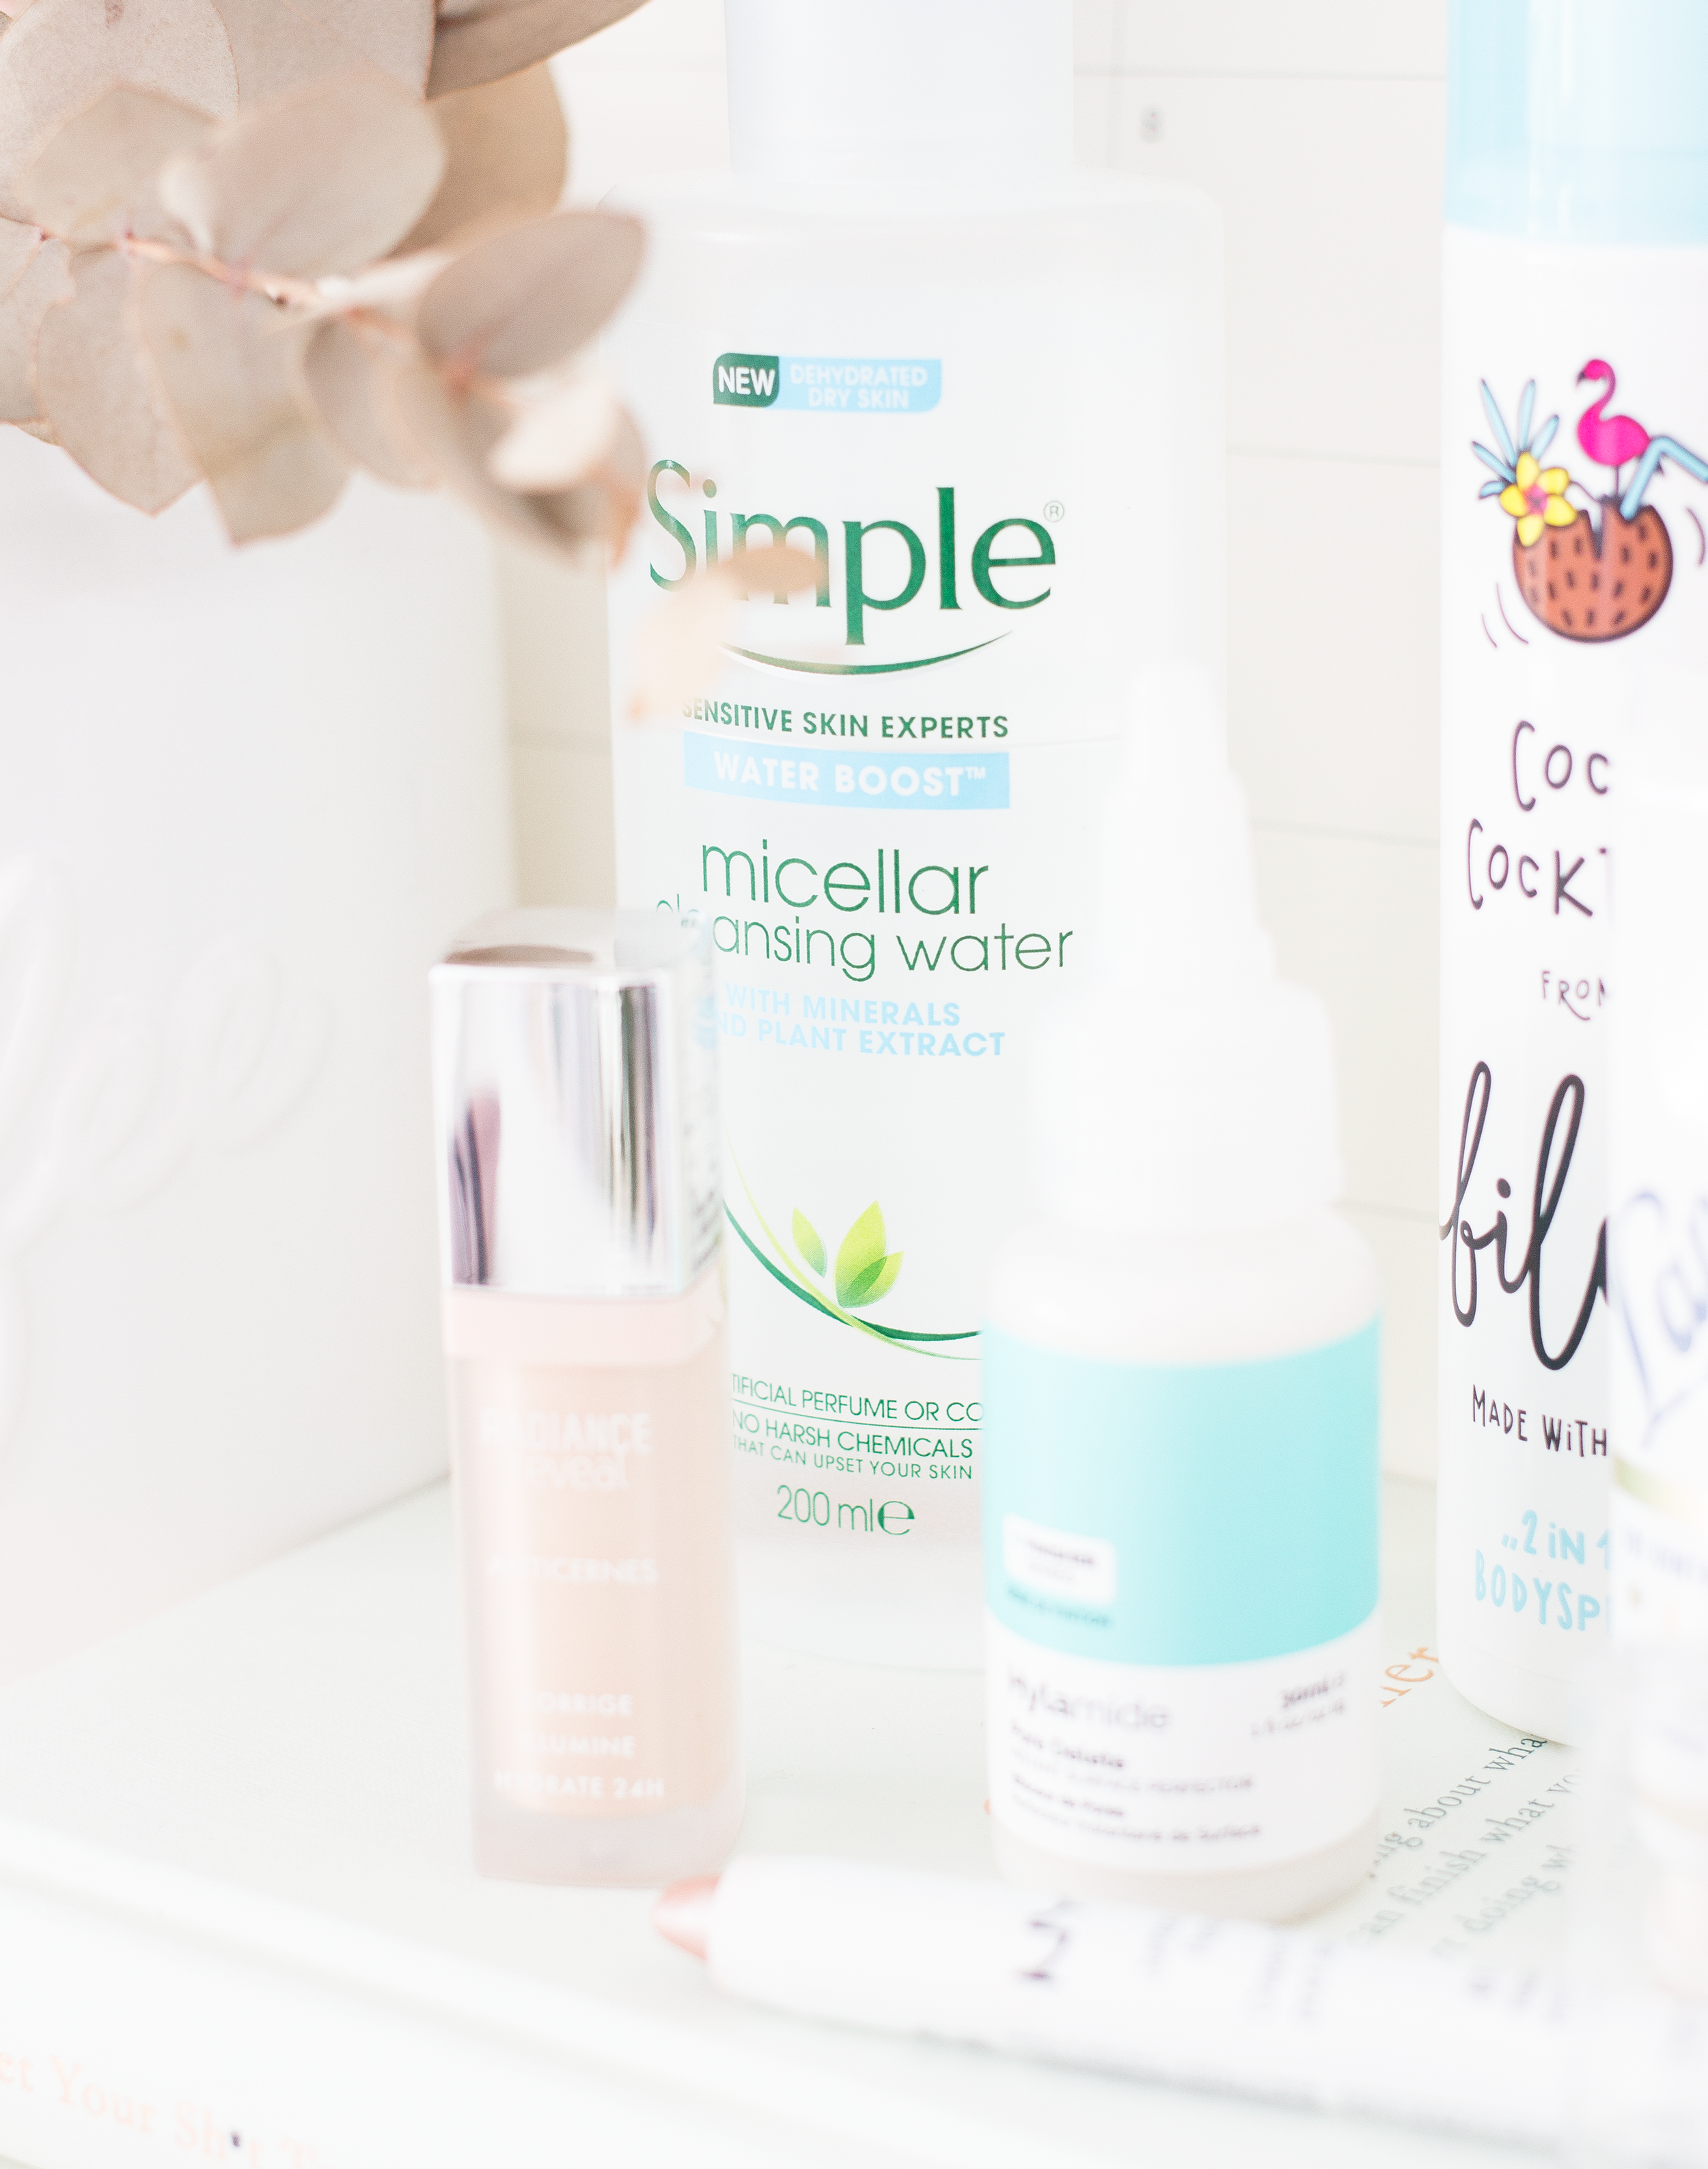 UNDER £10 - SIMPLE HYDRATOR BOOST MICELLAR CLEANSING WATER*: I've been loyal to the Garnier Micellar Water for years. And it takes a lot for me to stray away from it but this new release from Simple has got my heart right now. I thought the Garnier was just like water but this is incredible, you can really feel the hydration hit your skin as well as it removing any scrap of makeup you have on without causing any irritation to the complexion. It's more expensive than the Garnier and you definitely don't get as much. But as of right now I really do think this is better and having that extra hydration in the cooler months is ideal.BILOU COCO COCKTAIL BODY SPRAY*: I can't deny that using a body spray does make me feel like a teenager but this number of Bilou is wonderful. It's a sweet rich coconut scent that lingers of the skin and your clothes for a considerable amount of time. Whenever I just want a top of up scent then I will reach for this rather than a perfume and it's ideal as a money saver without missing out on a dreamy scent.